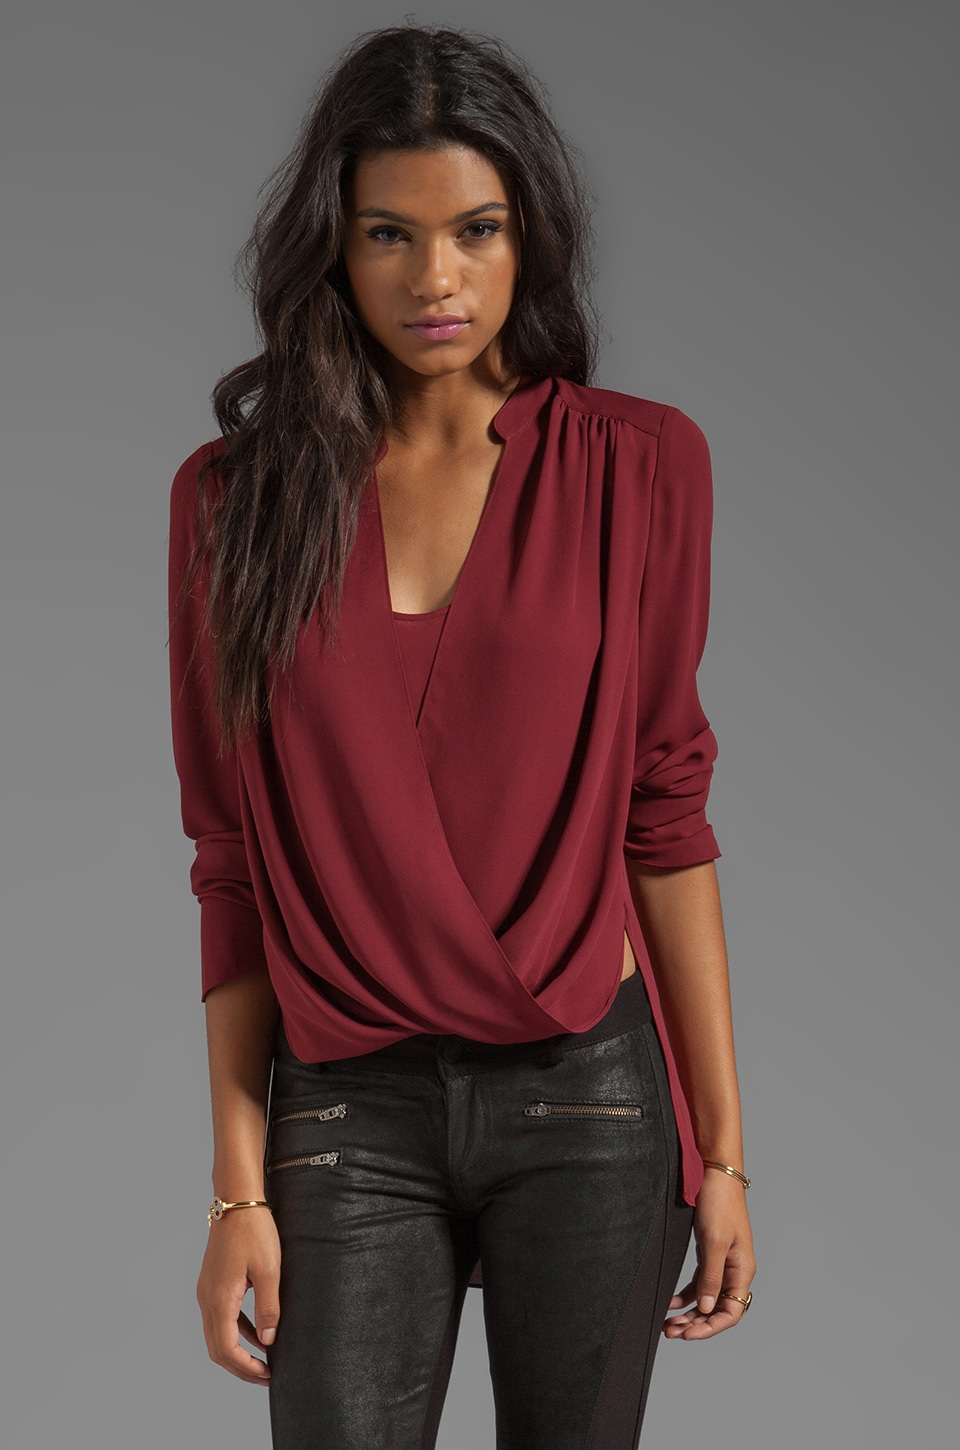 BCBGMAXAZRIA Wrap Blouse in Merlot